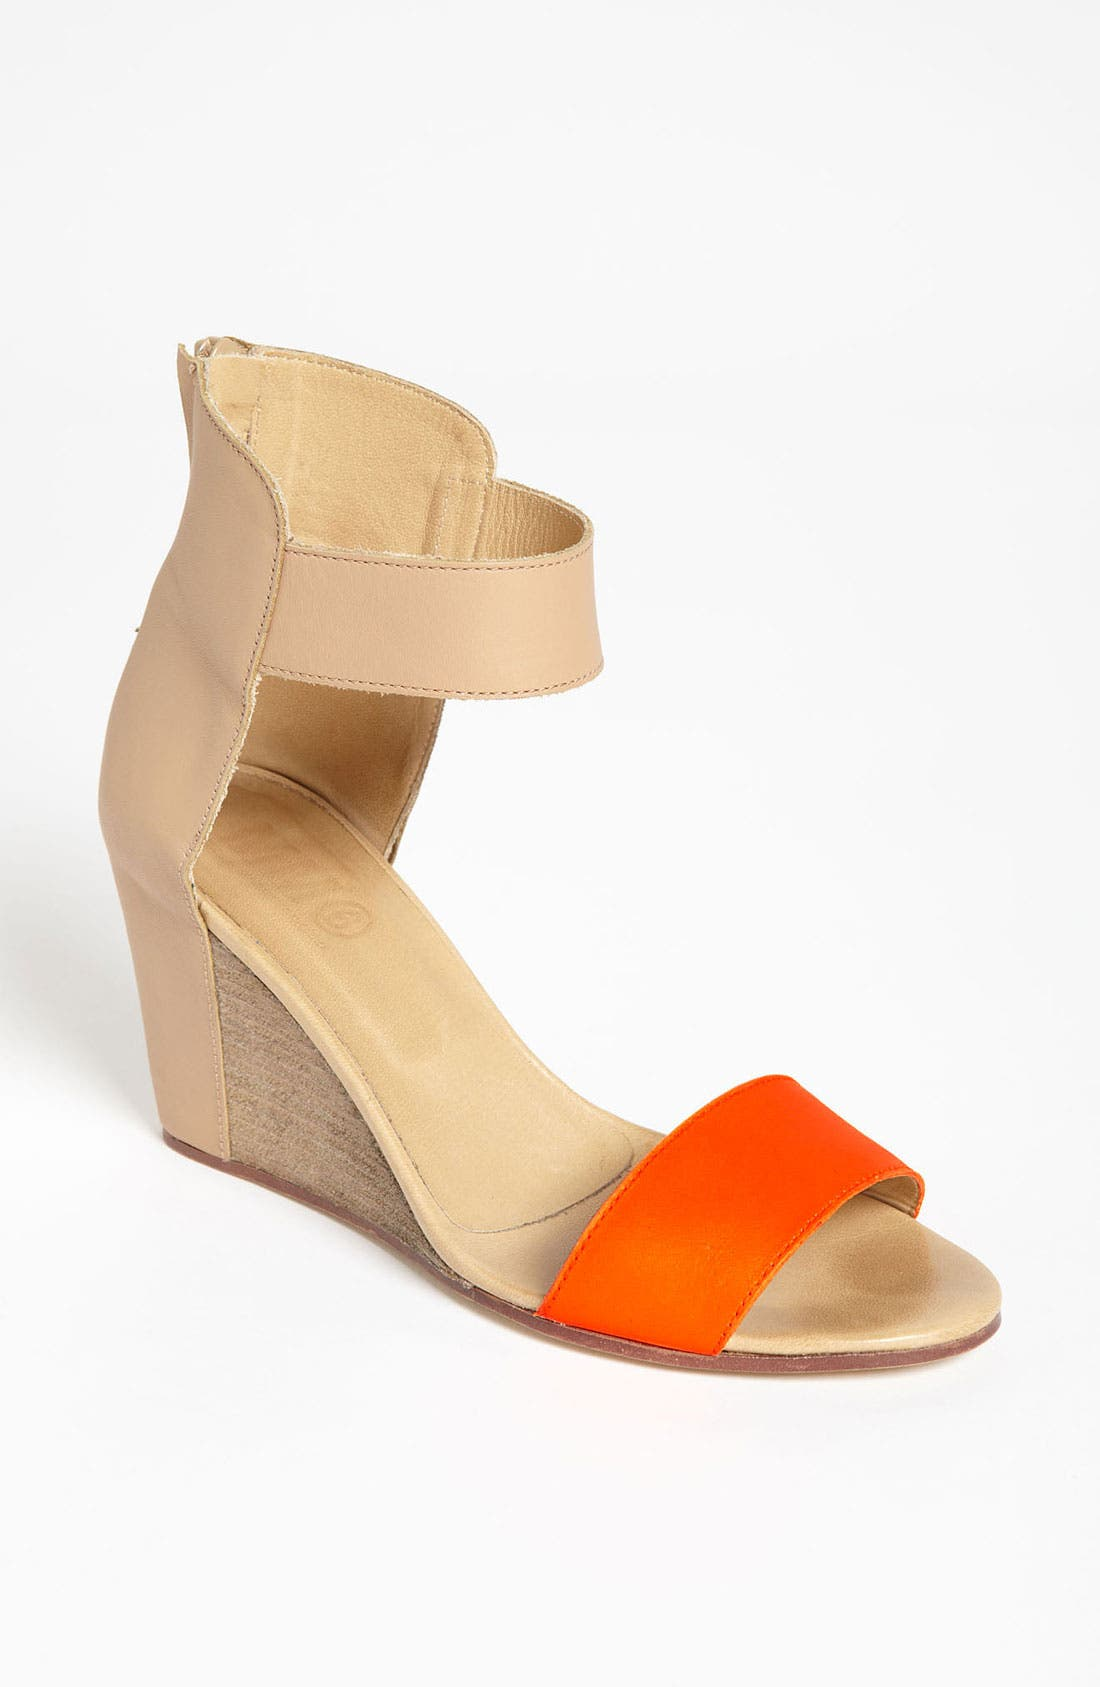 Alternate Image 1 Selected - MM6 Maison Margiela Two Tone Wedge Sandal